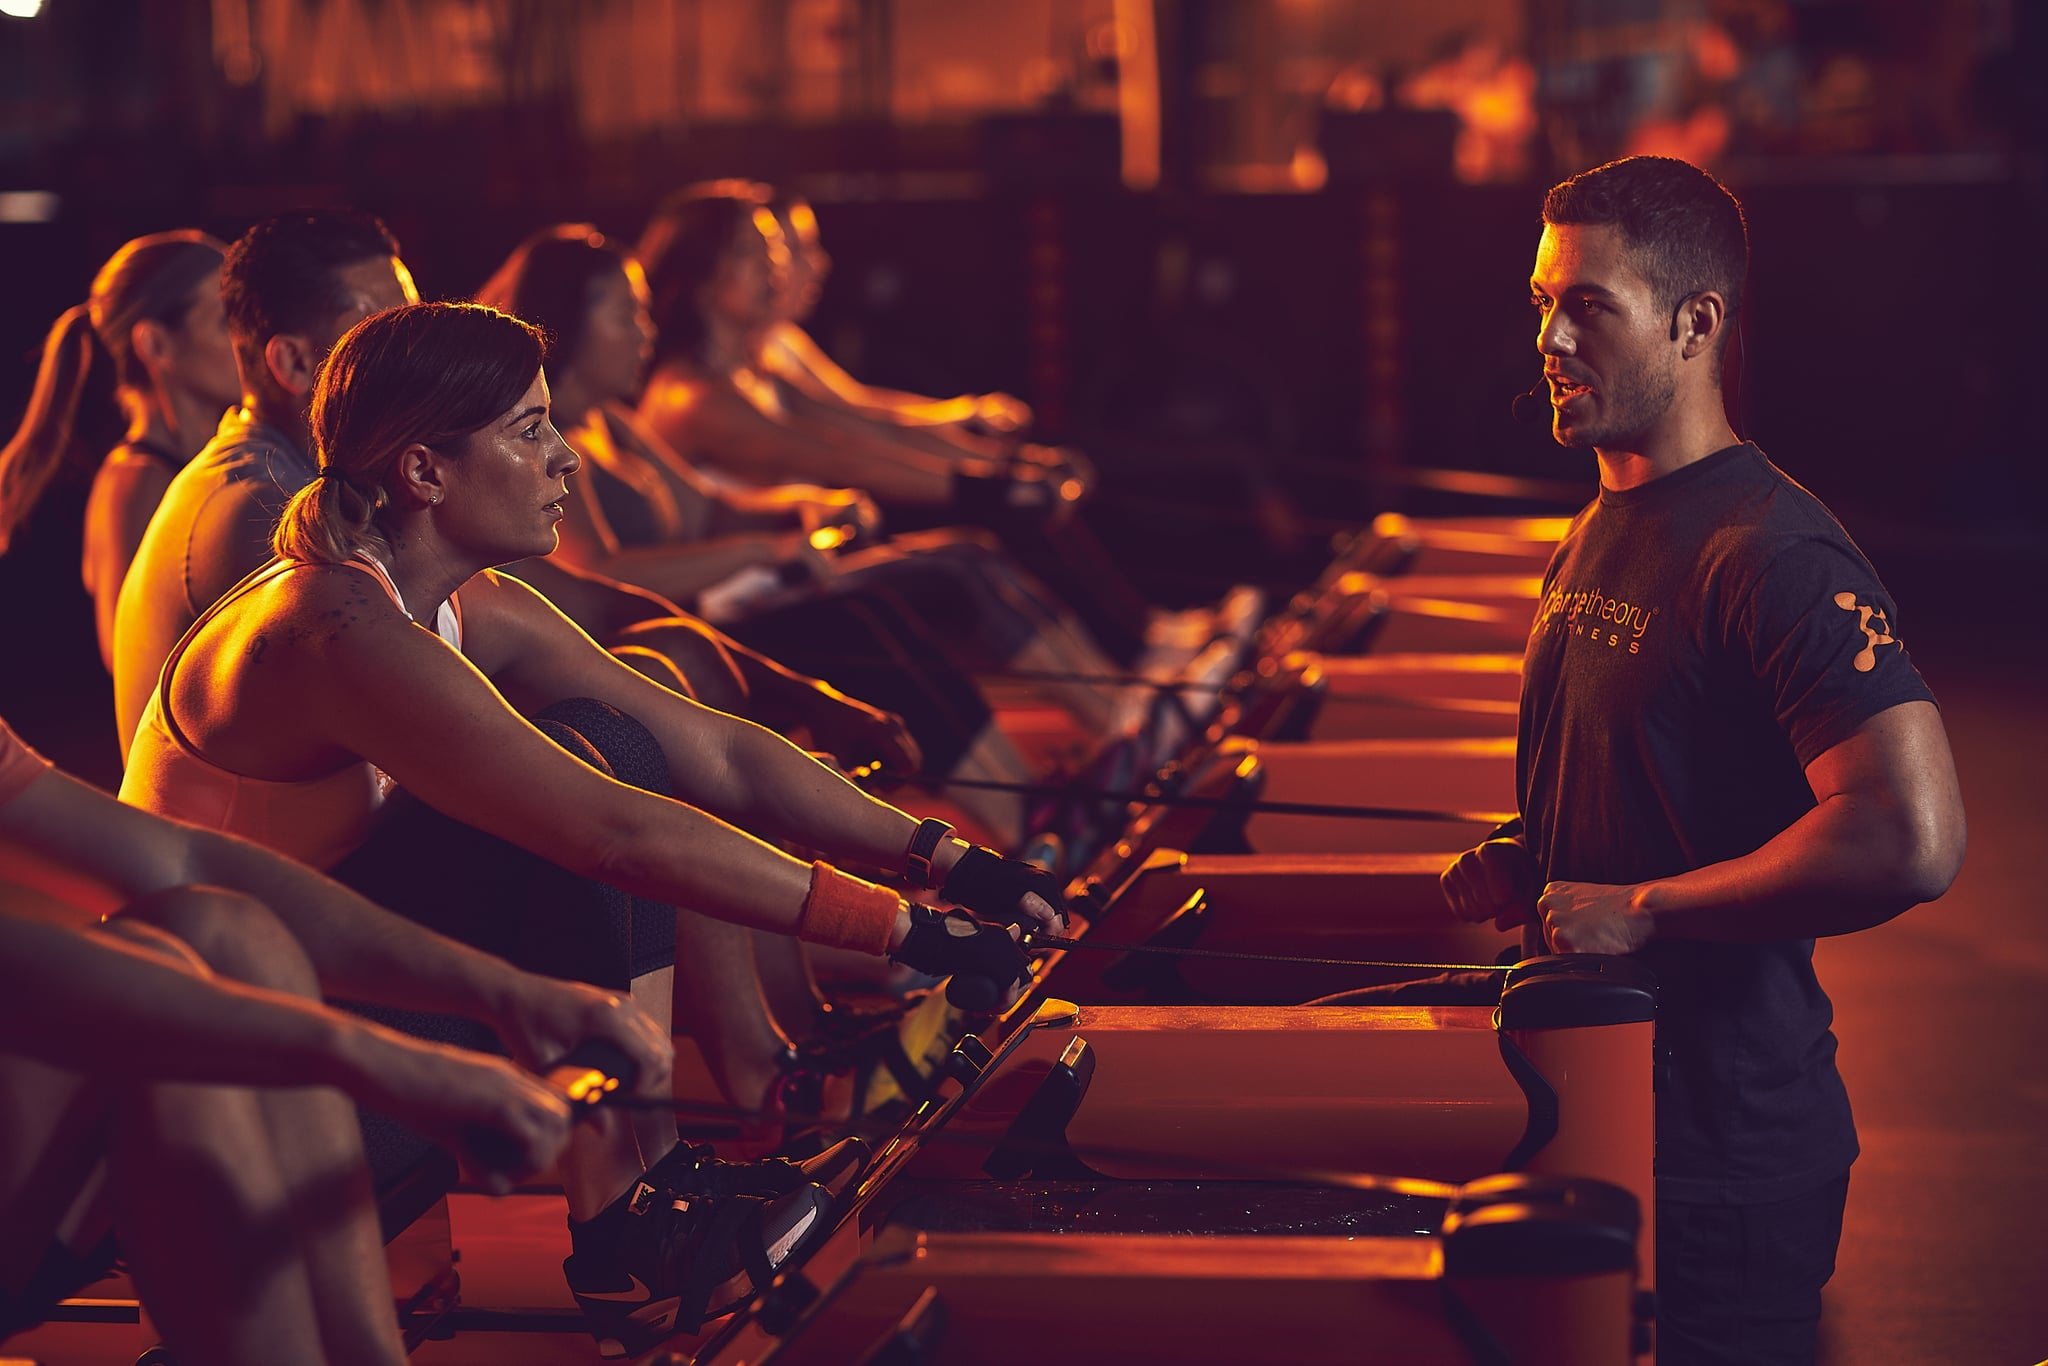 Exactly What You Need to Know Before Trying Orangetheory in 2019 — Including the Price